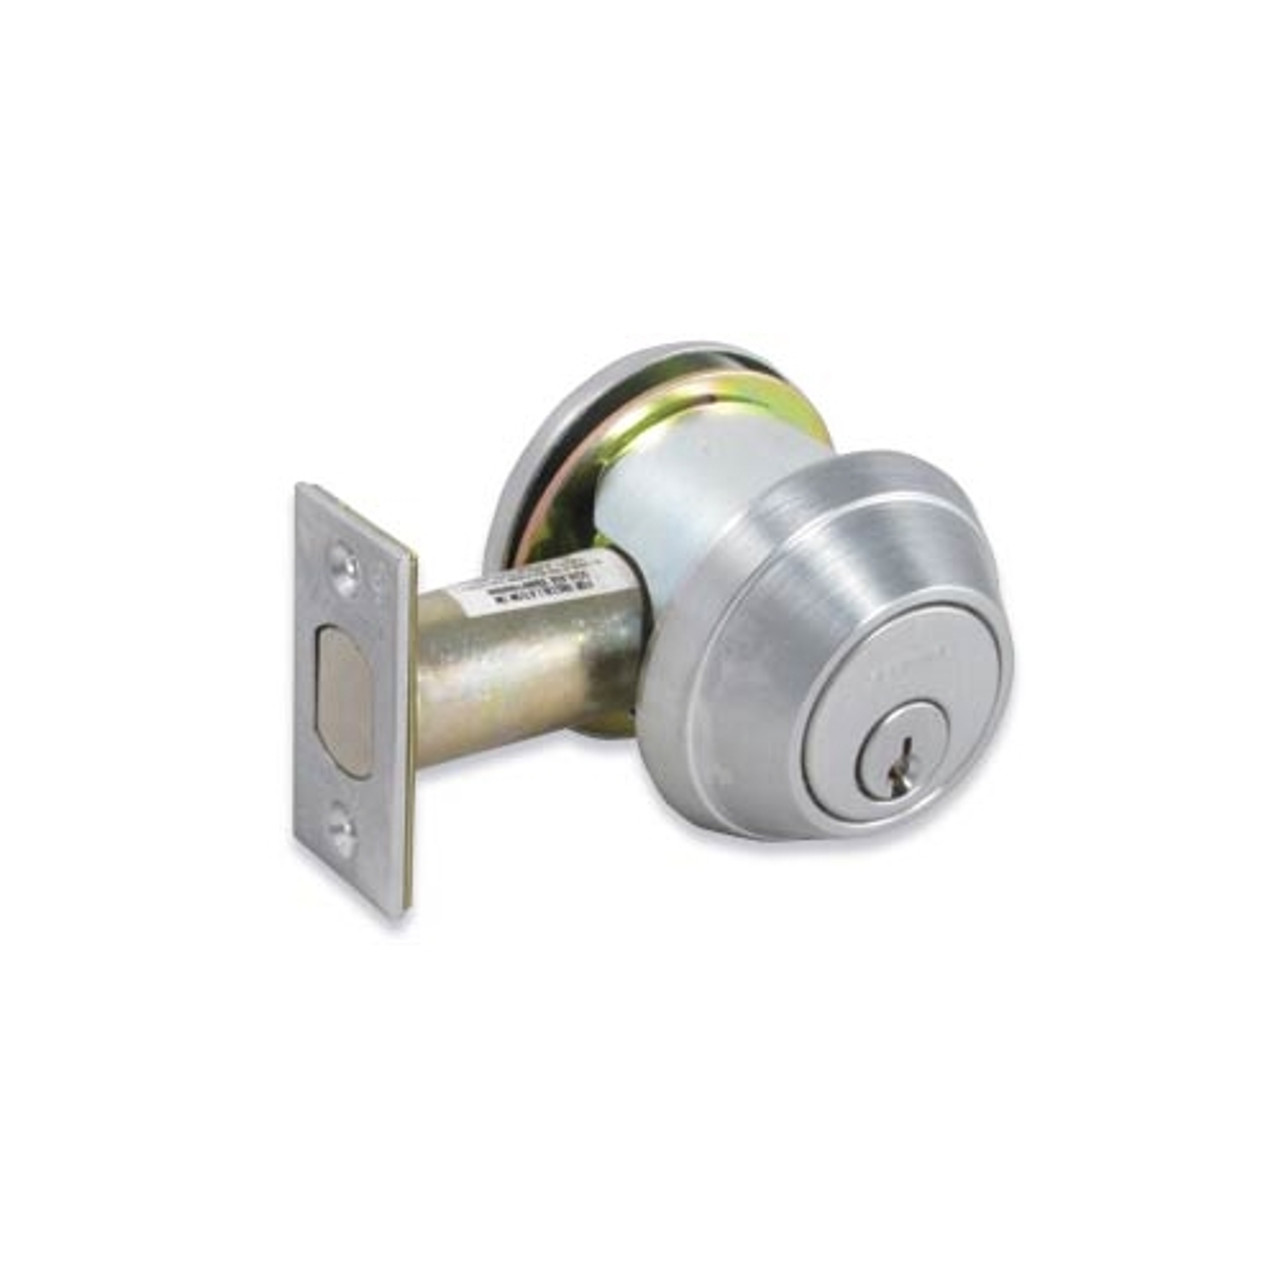 Schlage B660p Grade 1 Single Cylinder Deadbolt